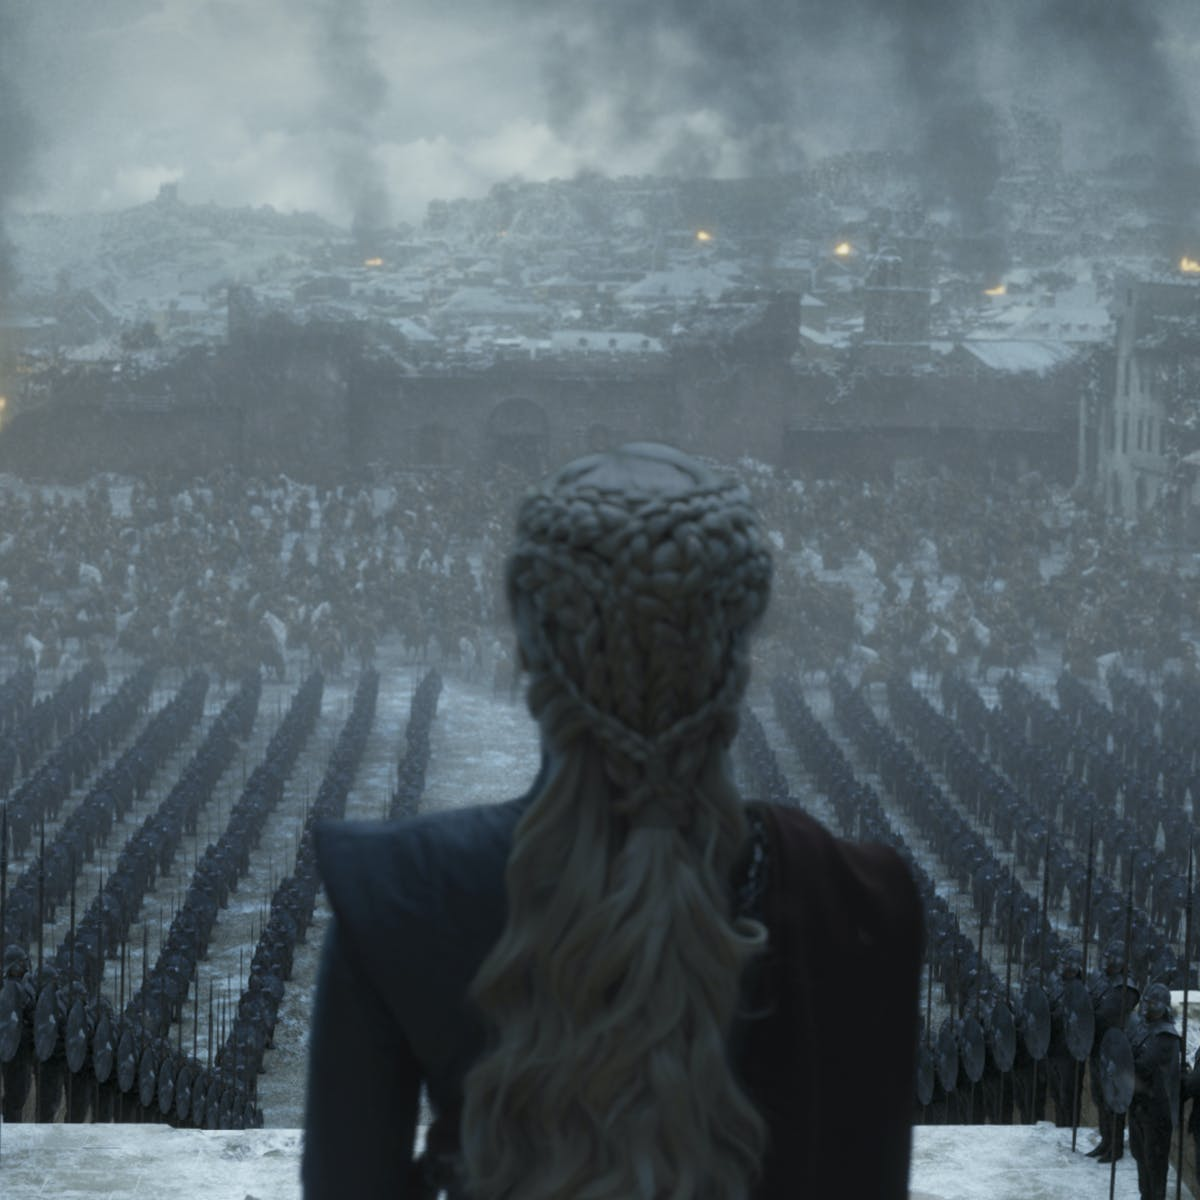 Game of Thrones: what Machiavelli might have made of the